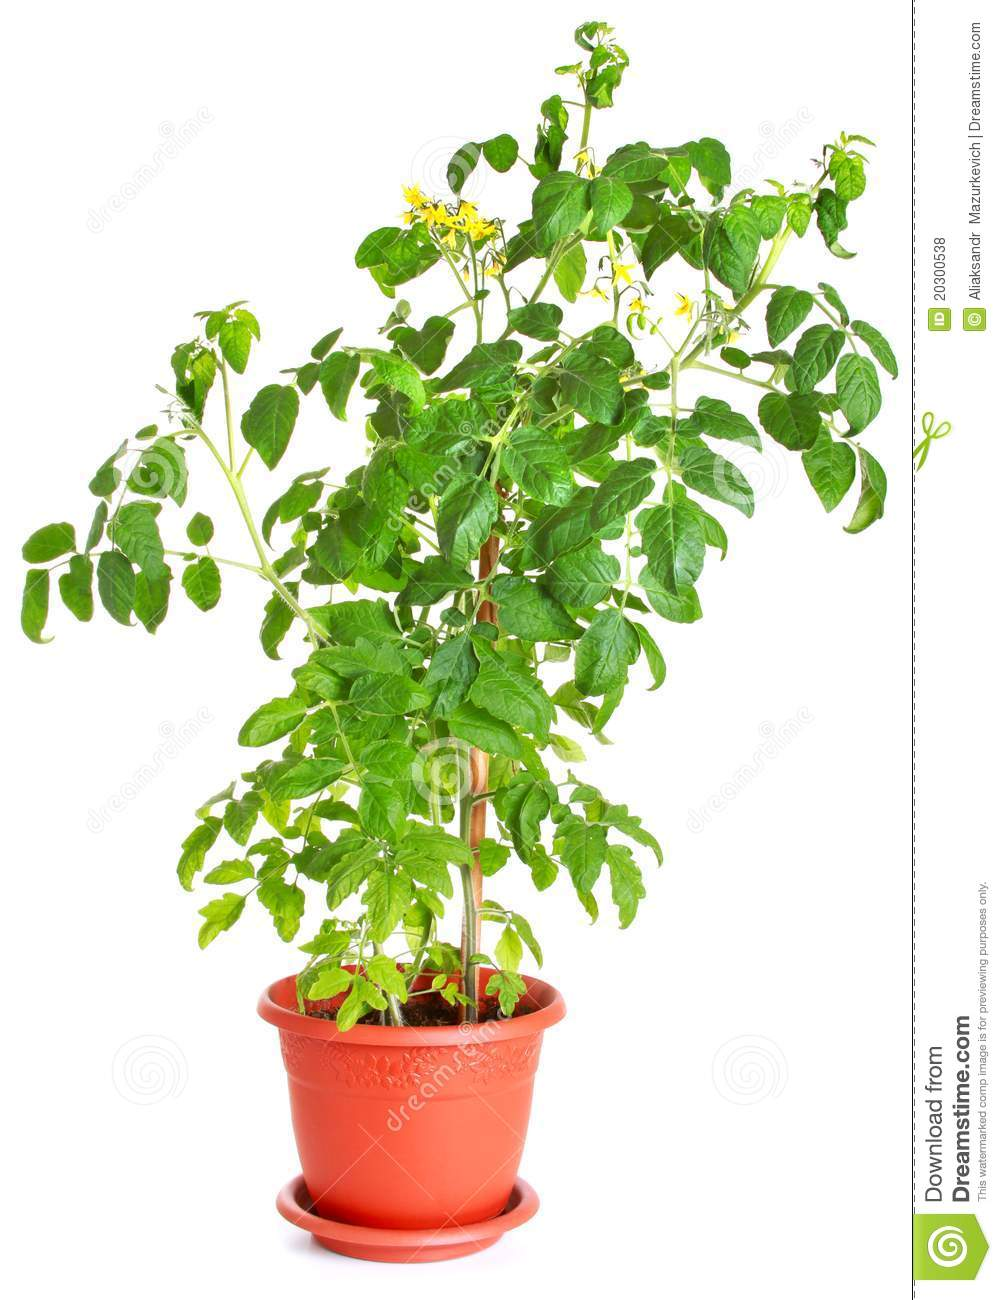 Tomato plant growing in a flower pot stock photo image of green photosynthesis 20300538 - Seven tricks for healthier potted plants ...